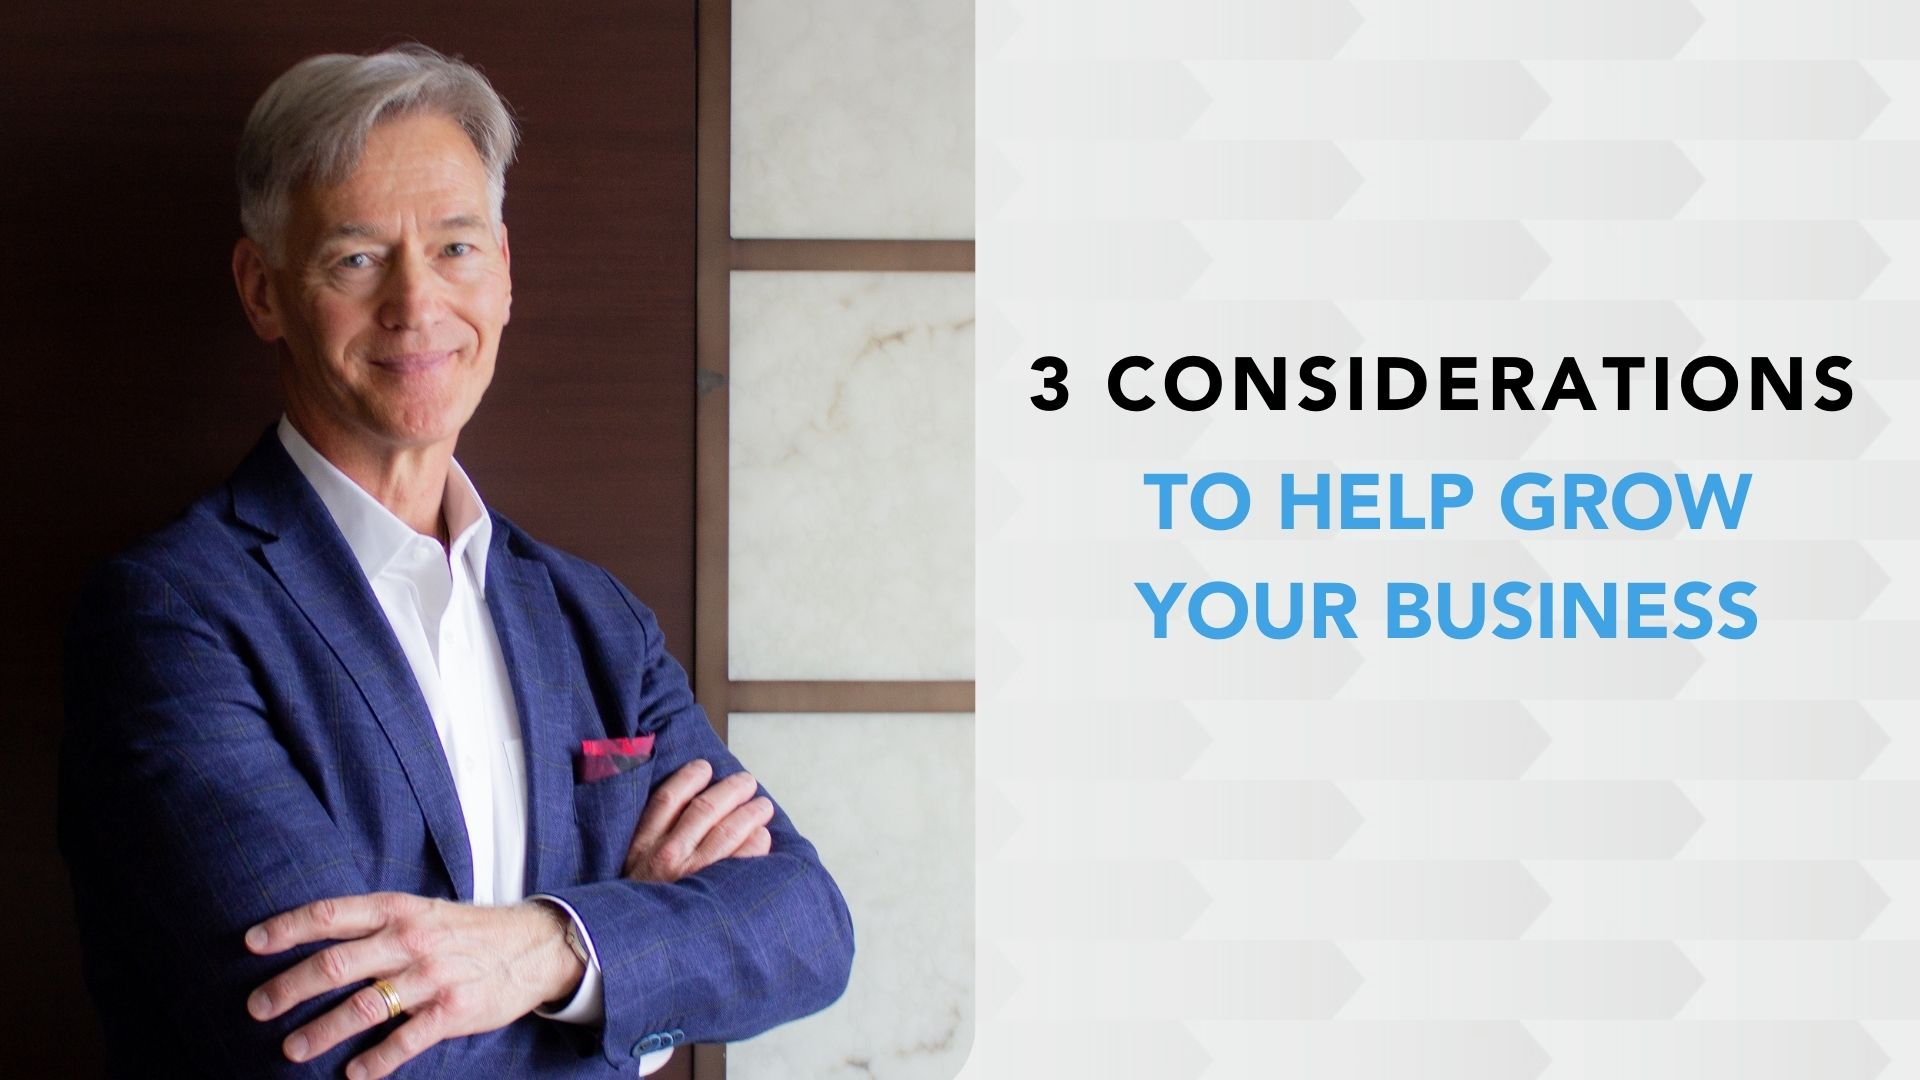 3 Considerations to Help Grow Your Business